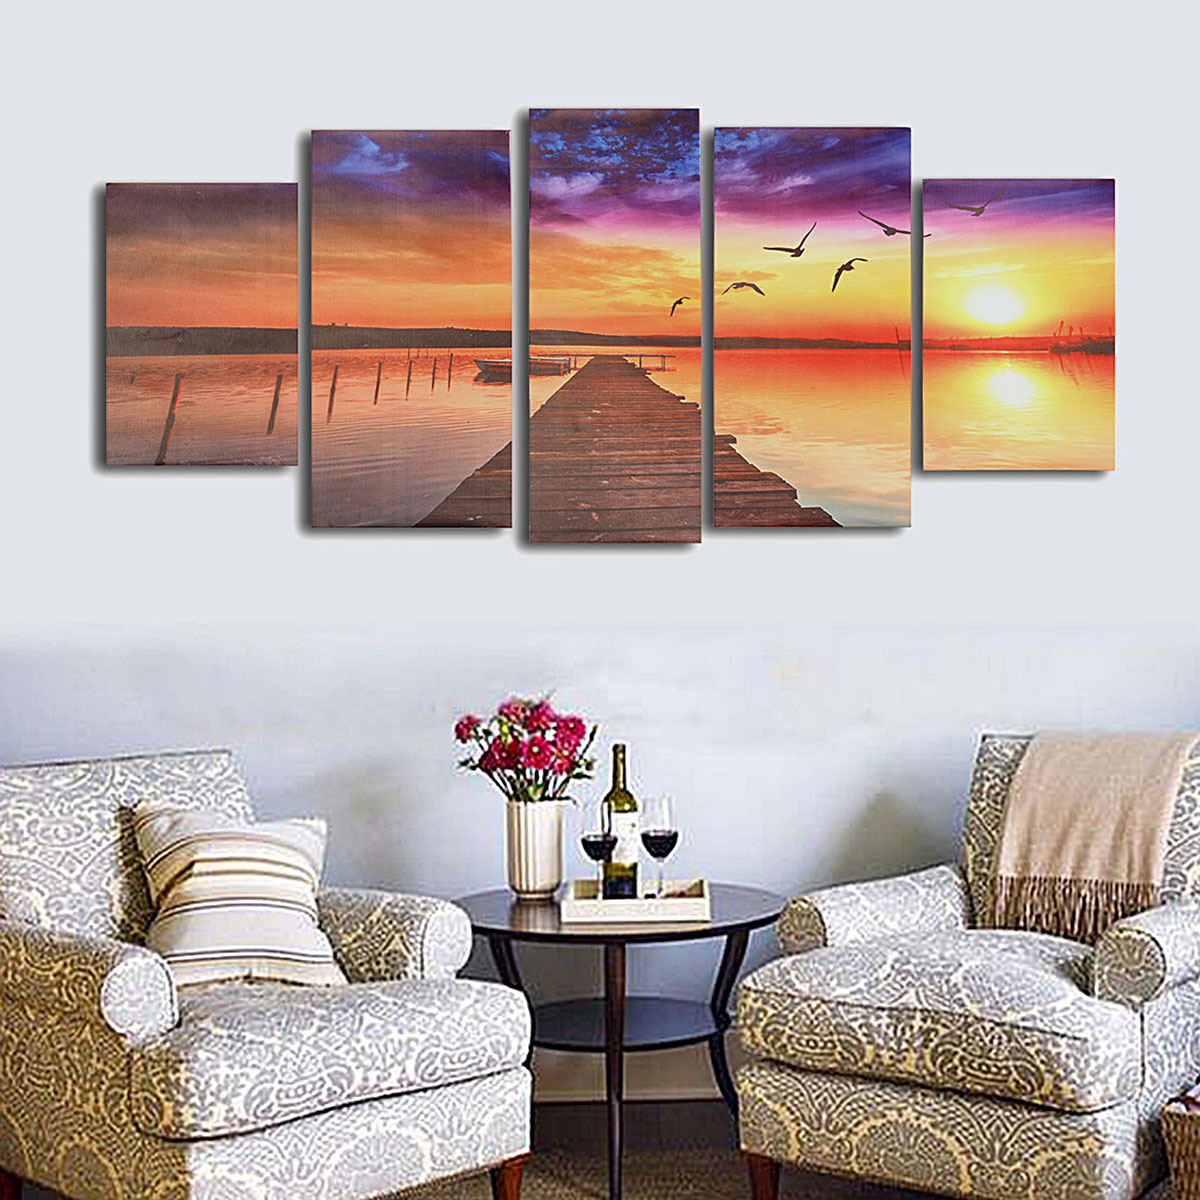 5Pcs Frameless Wood Path Modern Canvas Picture Oil Print Painting Home Wall Decor